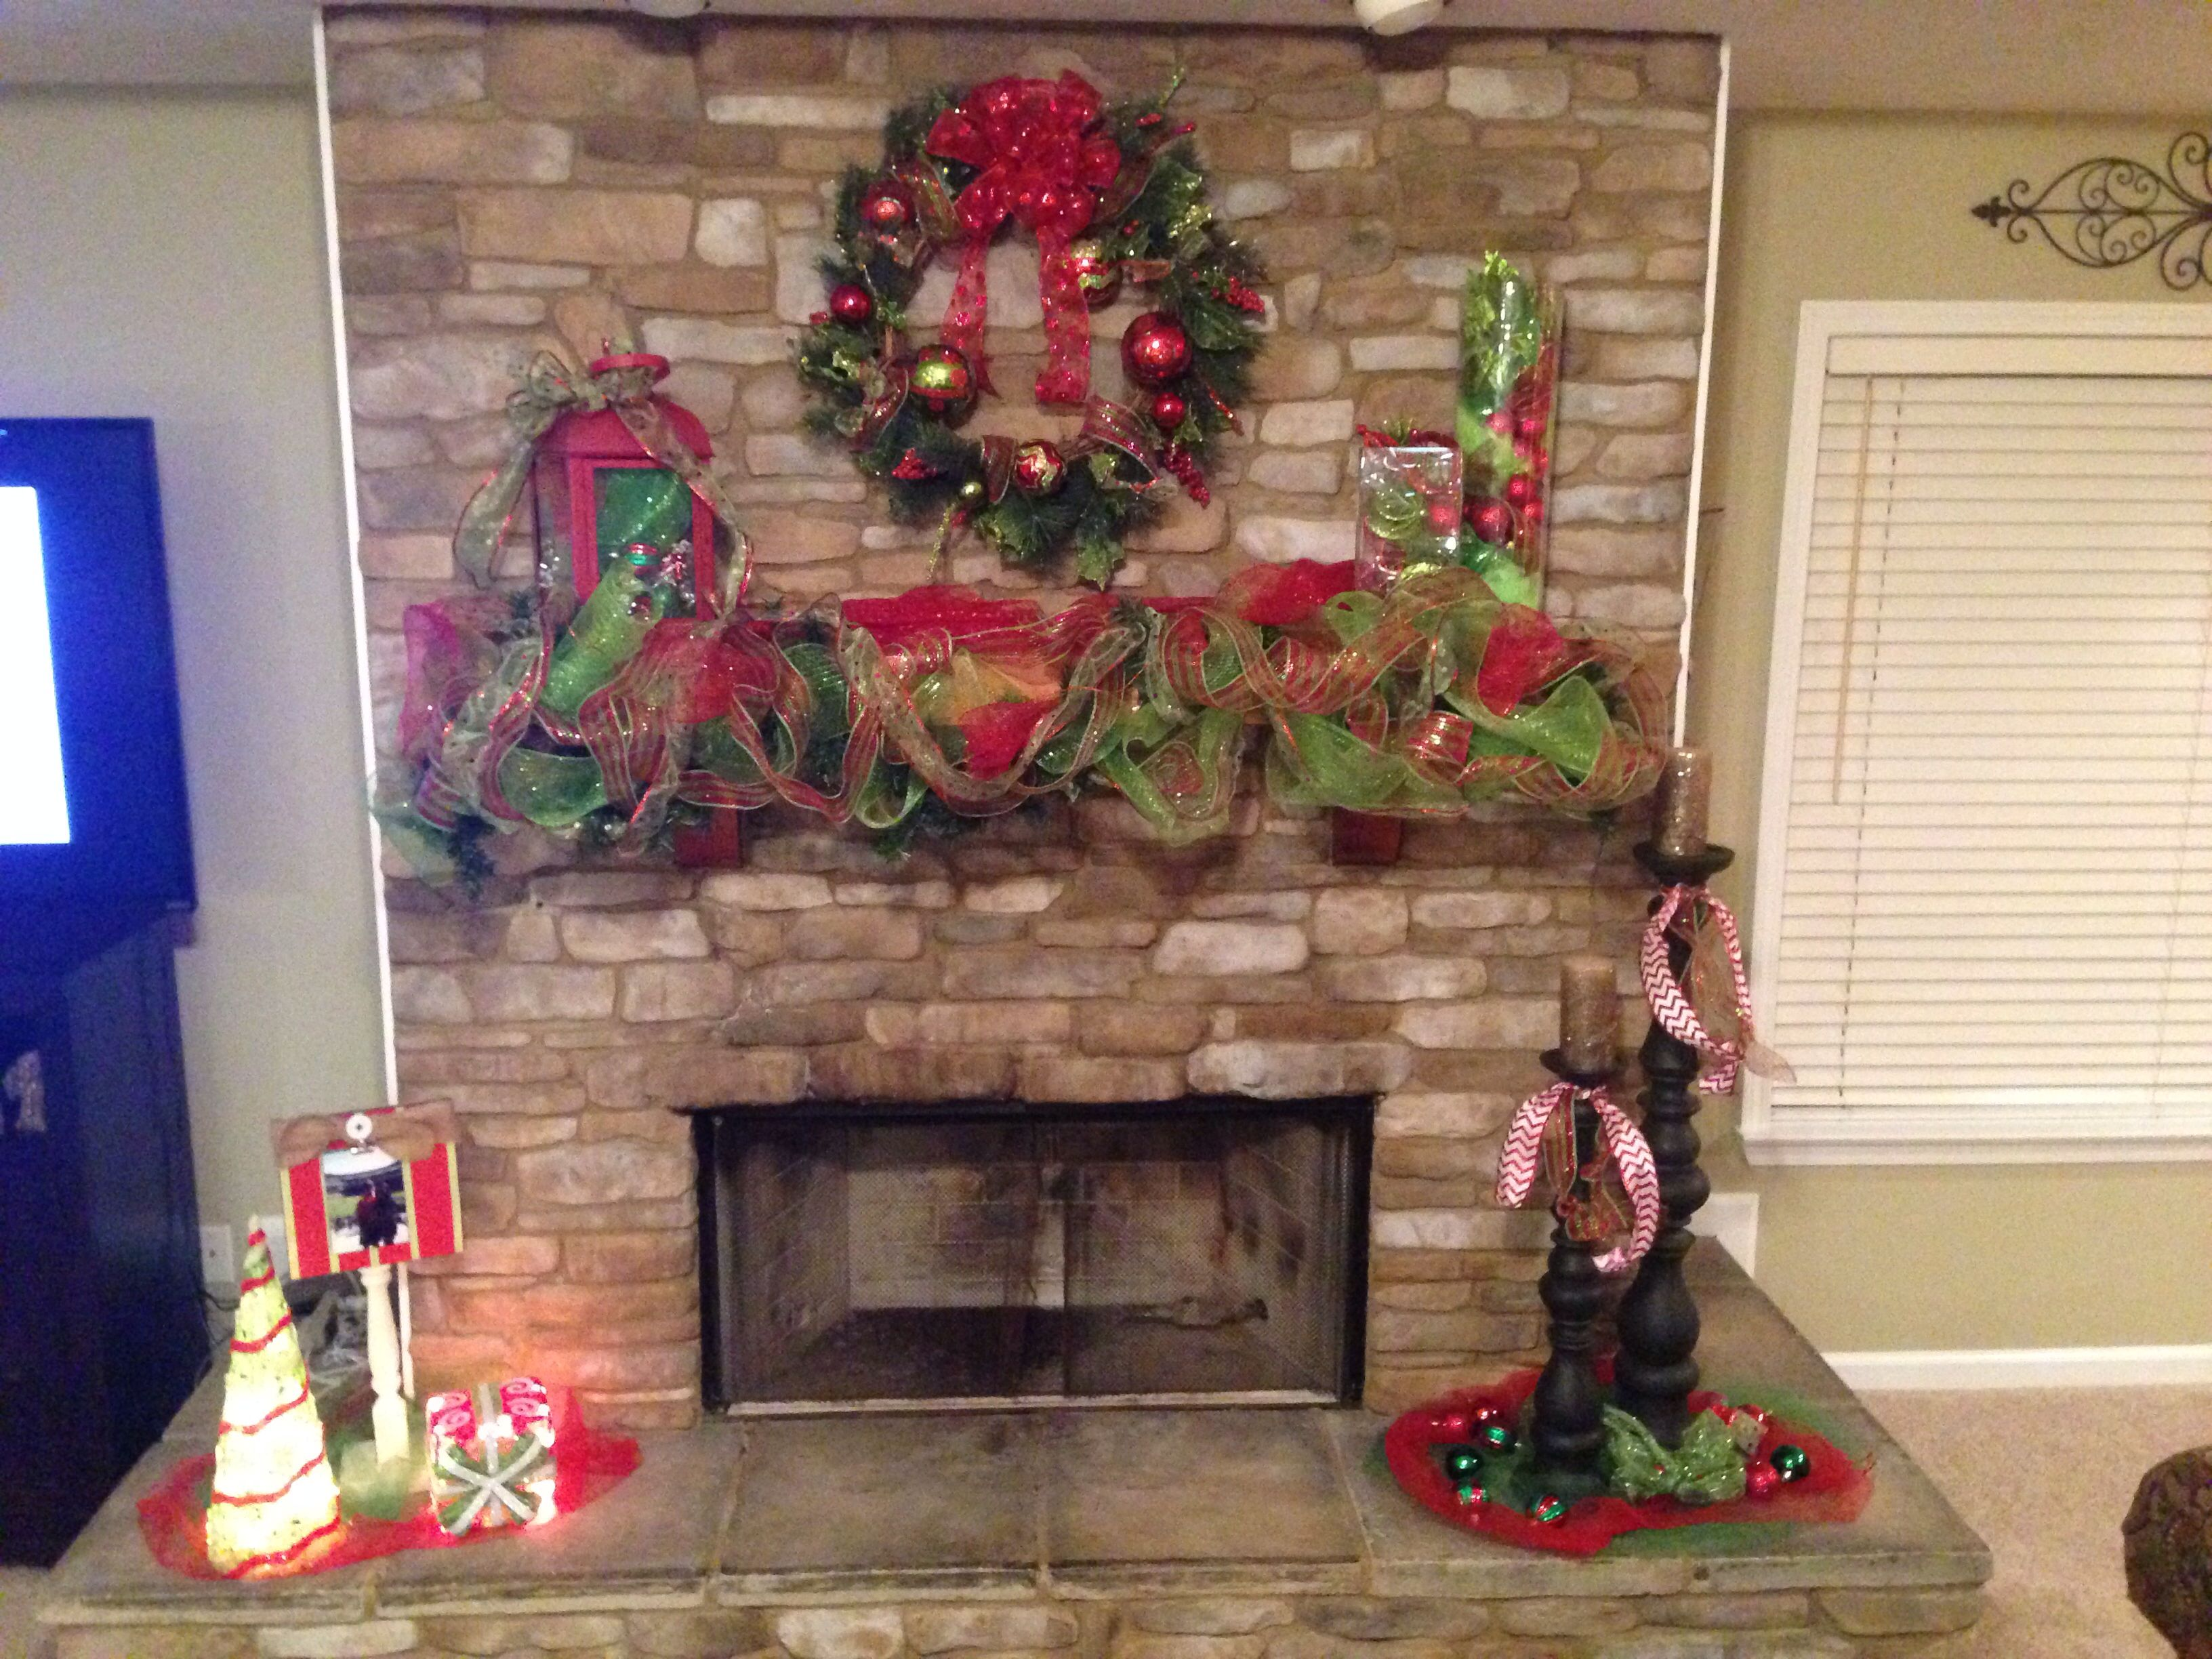 Christmas fireplace mantle decorations Christmas fireplace mantle